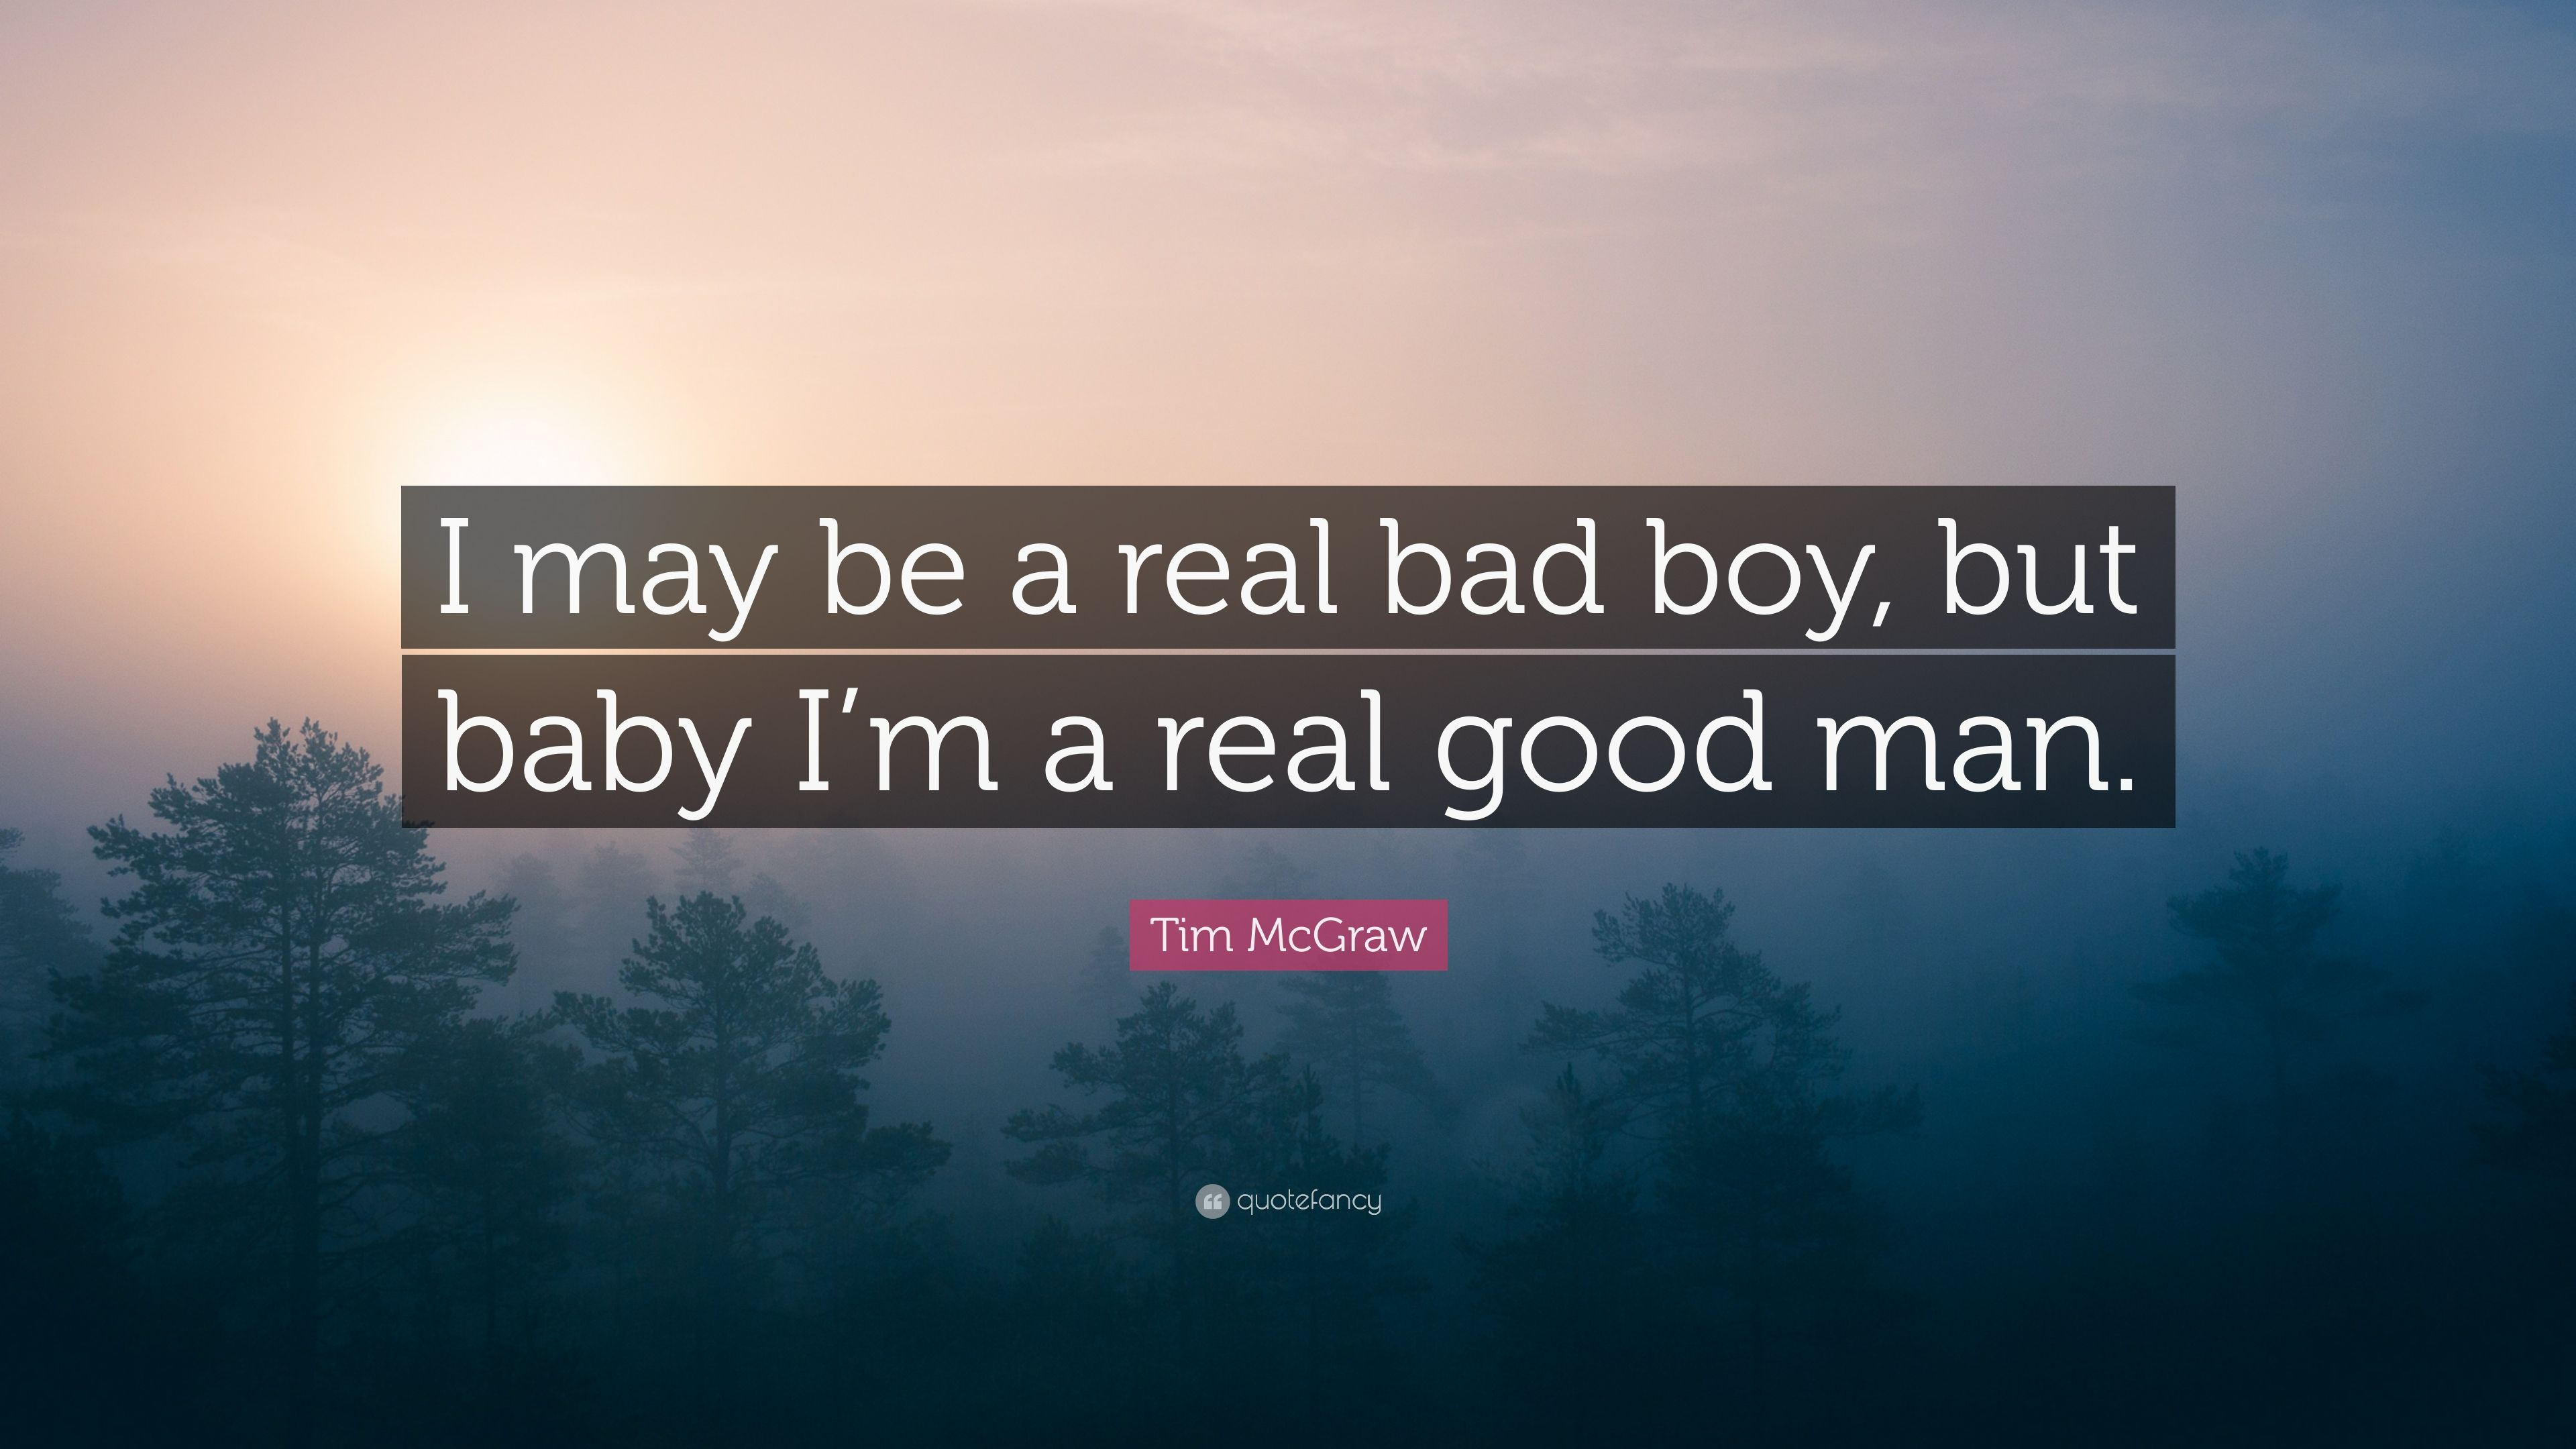 Tim McGraw Quote: I may be a real bad boy, but baby Im a